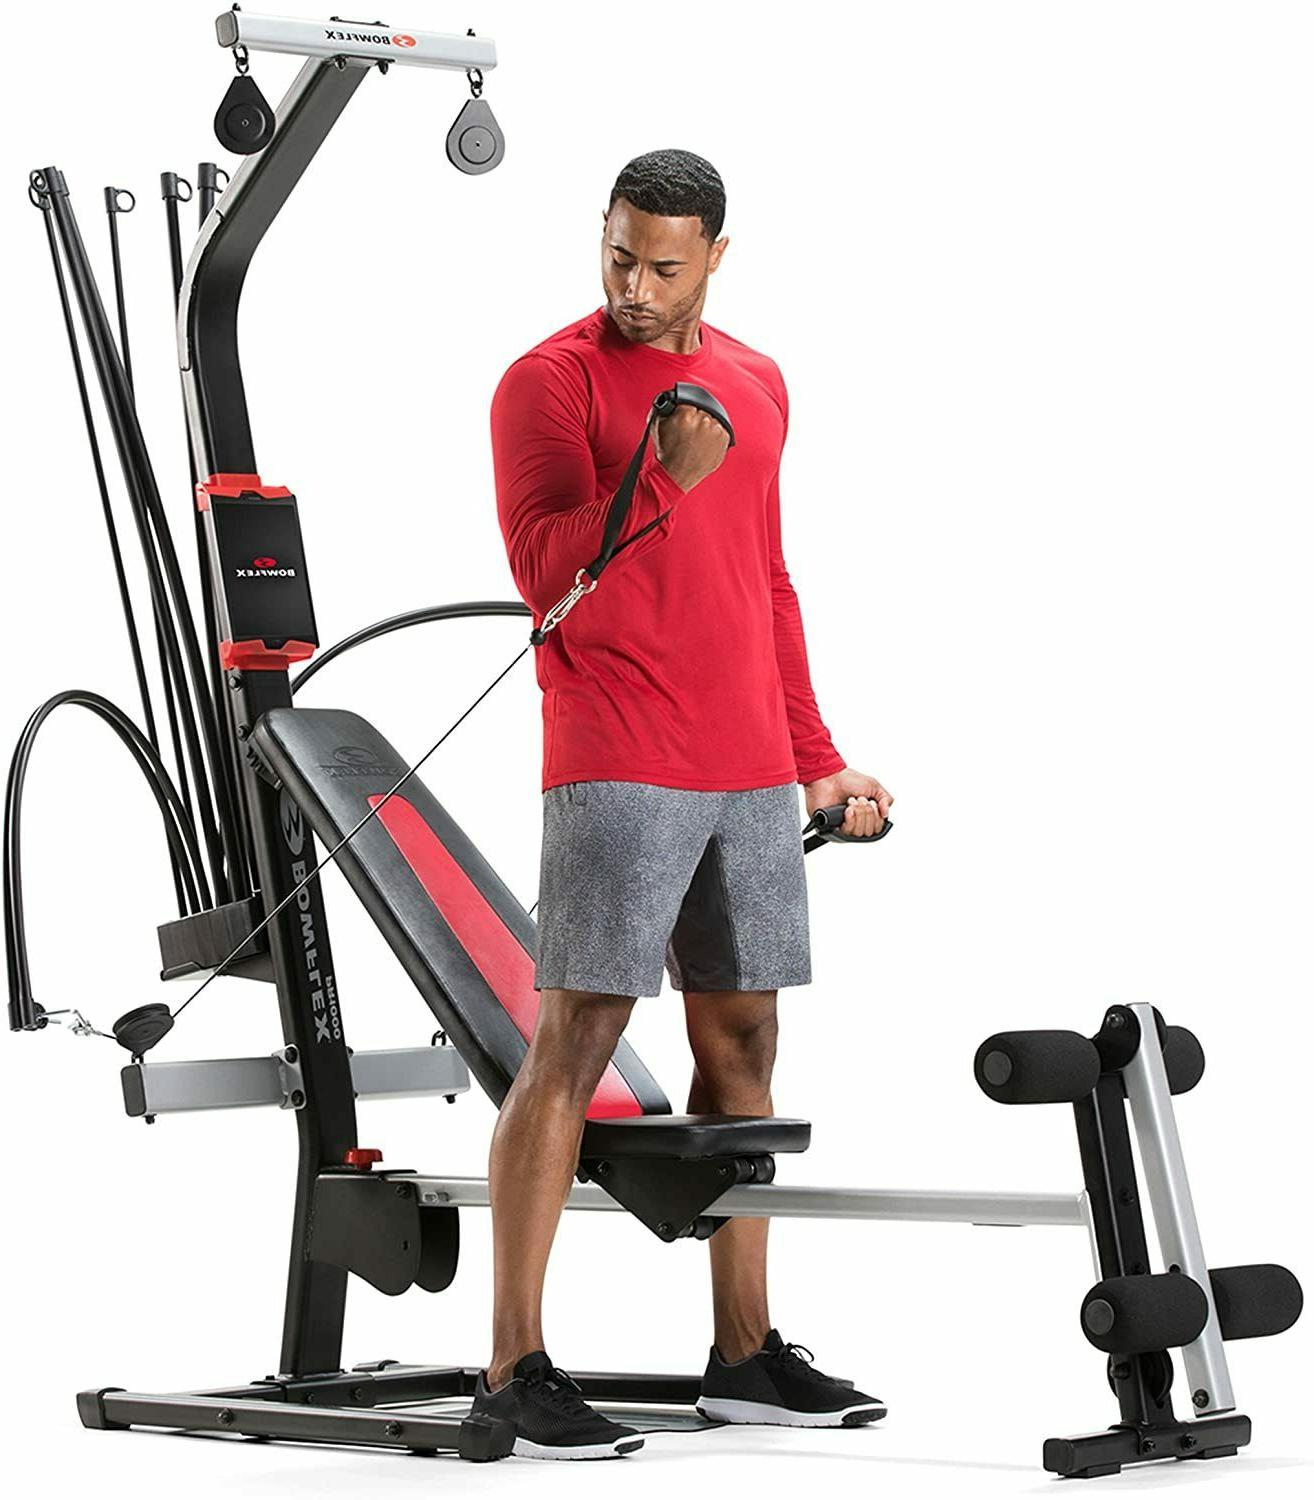 Bowflex PR1000 IN ASAP - Delivery